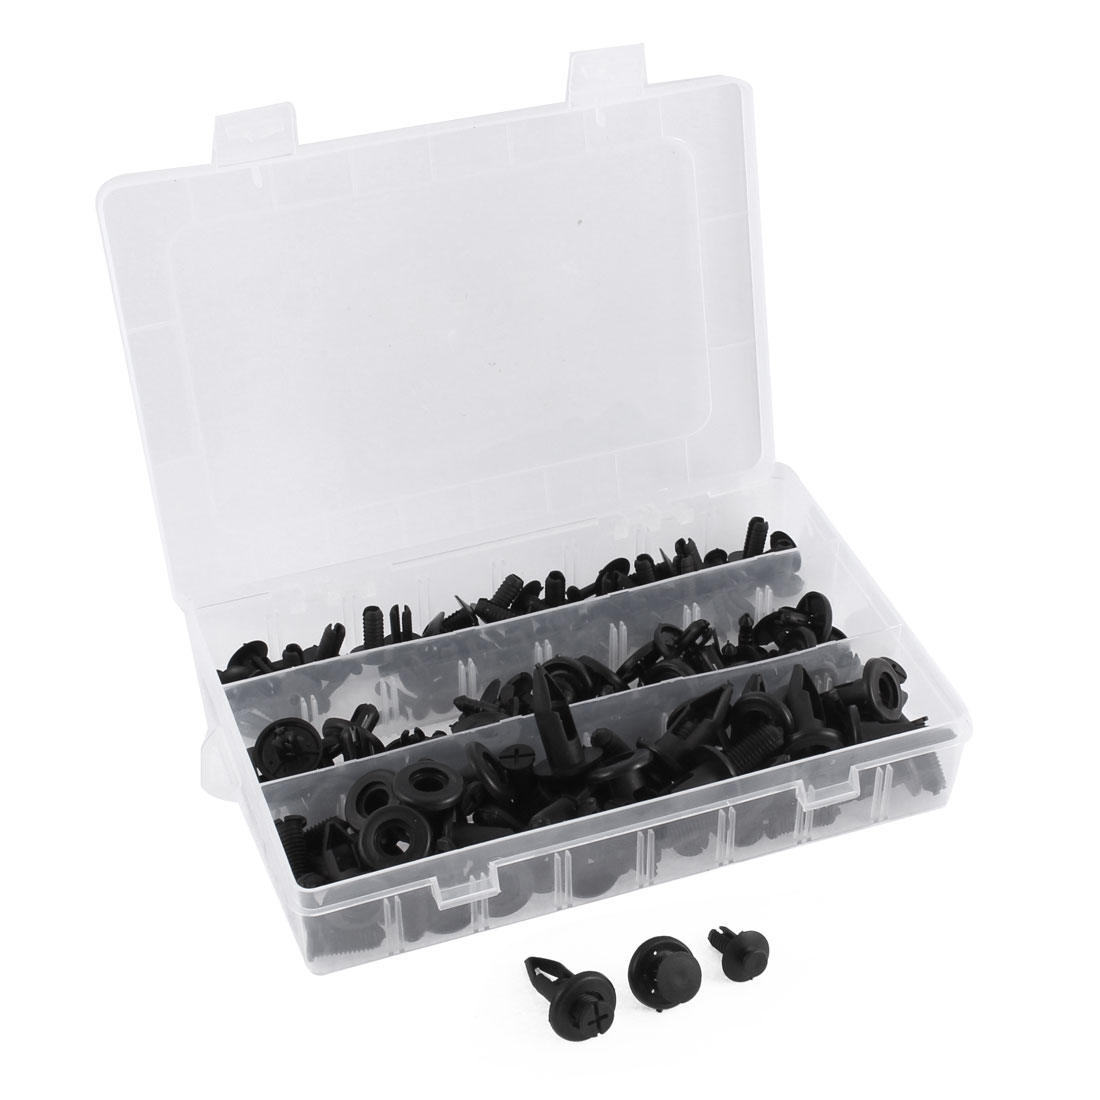 90 Pcs in 1 Black Plastic Rivets Push-Type Panel Hood Retainer Clips